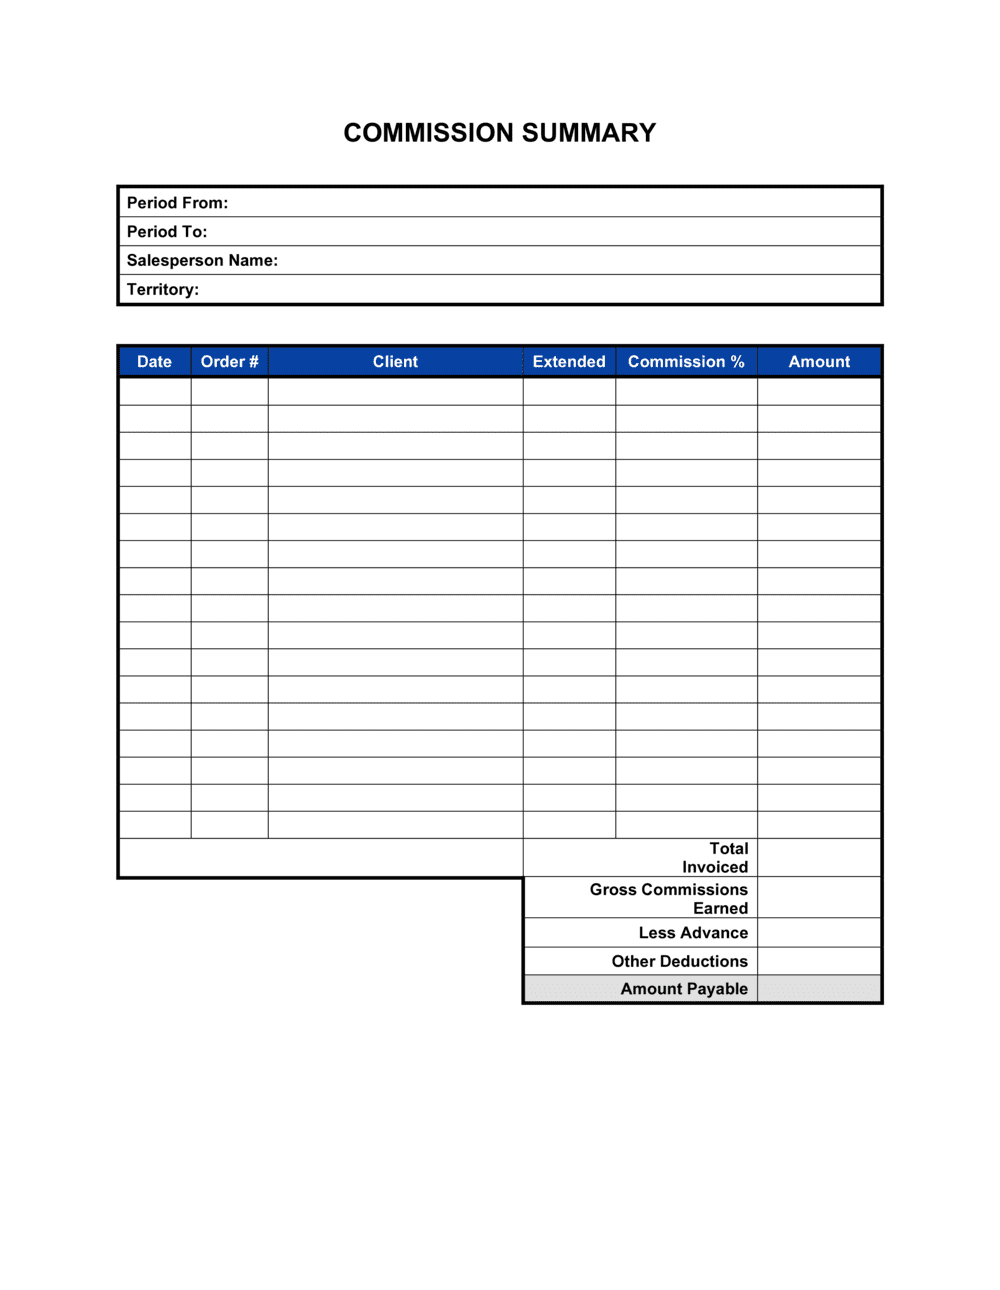 Business-in-a-Box's Commission Summary Template